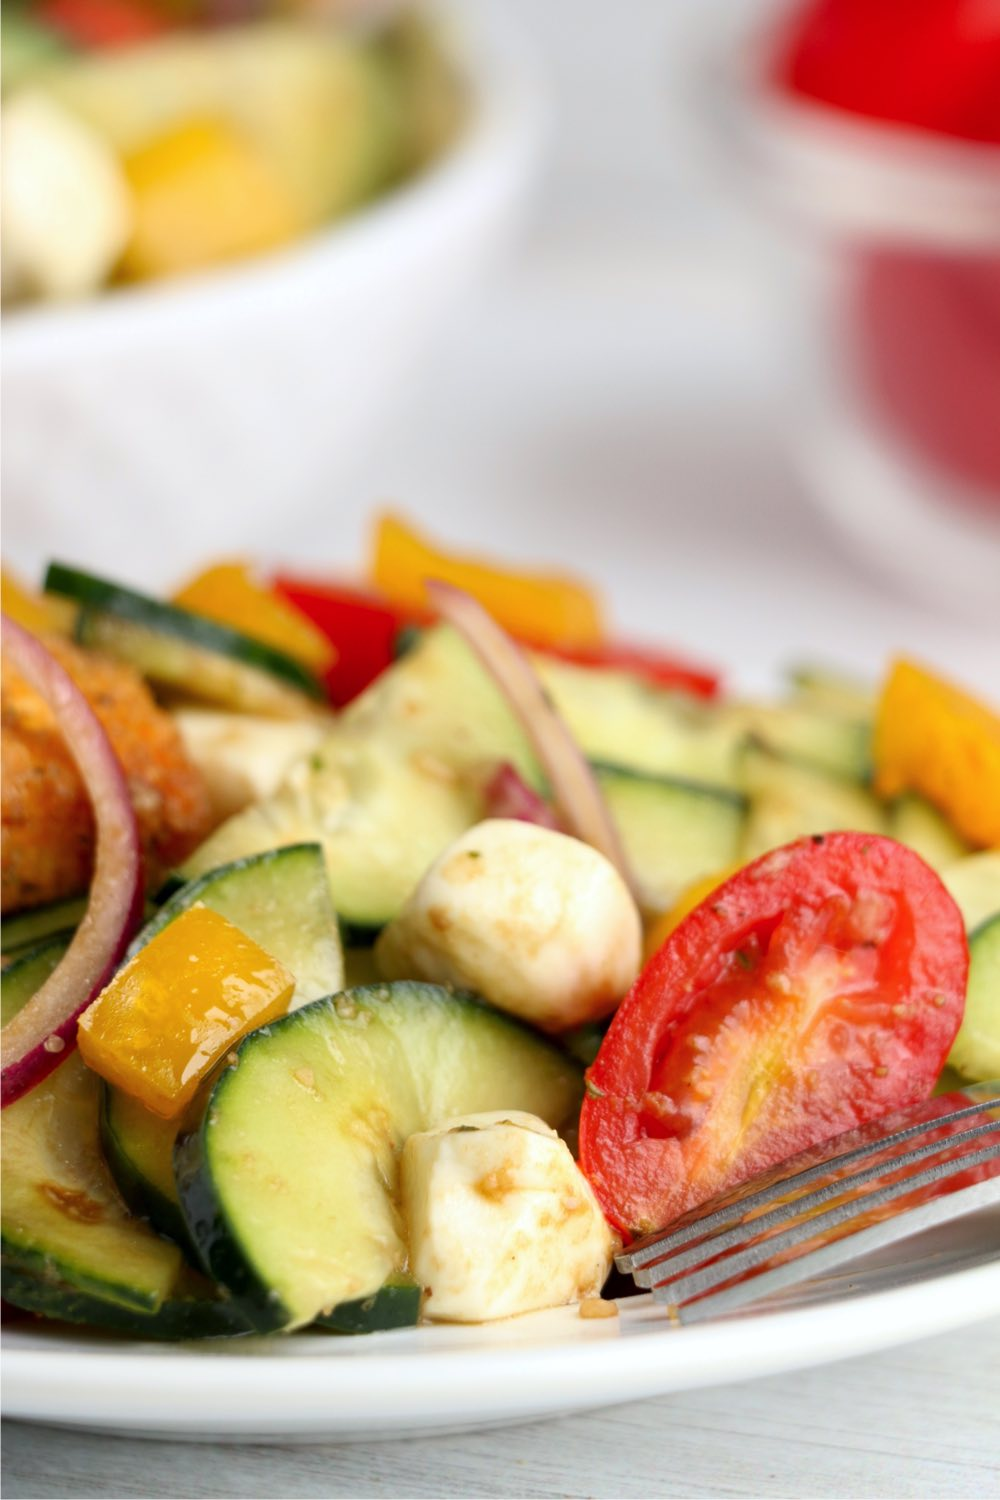 tomatoes, cucumbers and mozzarella in salad on white plate